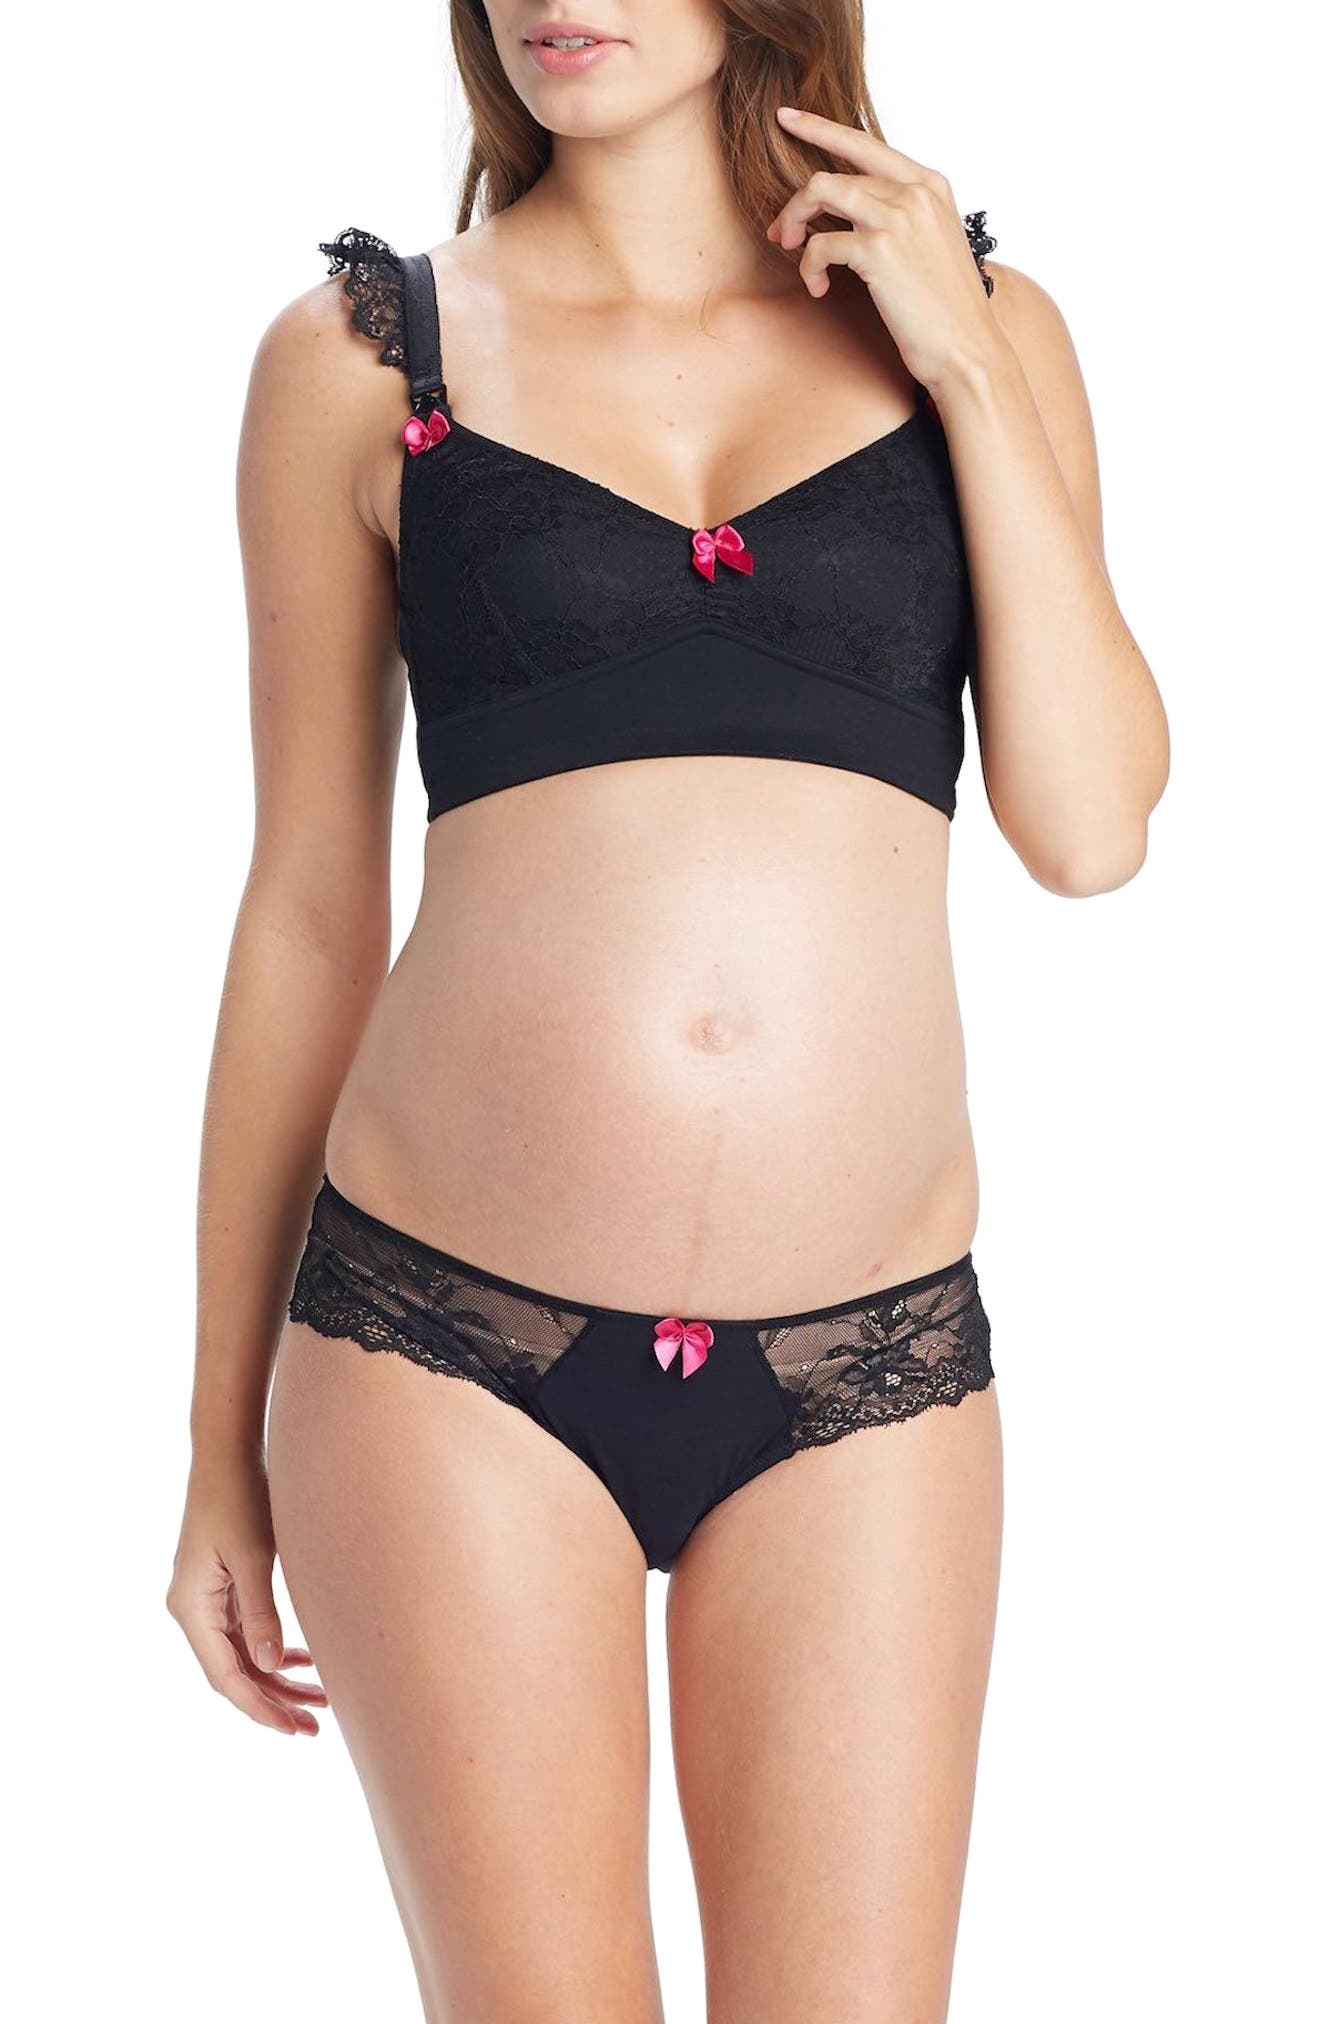 You! Lingerie Nova Lace Maternity Panties,                             Alternate thumbnail 5, color,                             Black